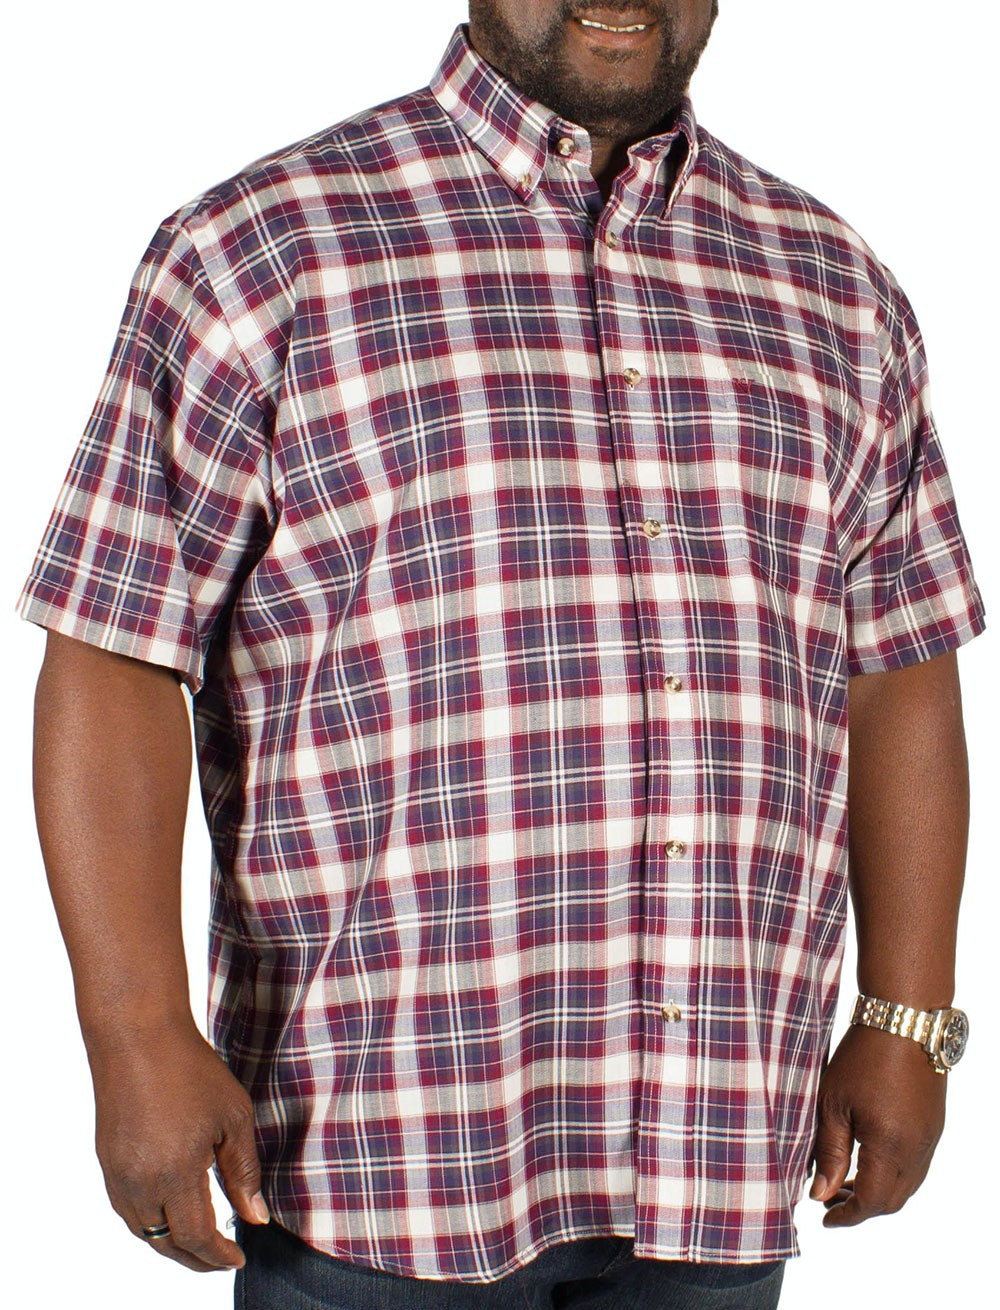 Cotton Valley Short Sleeve Twill Check Shirt Wine